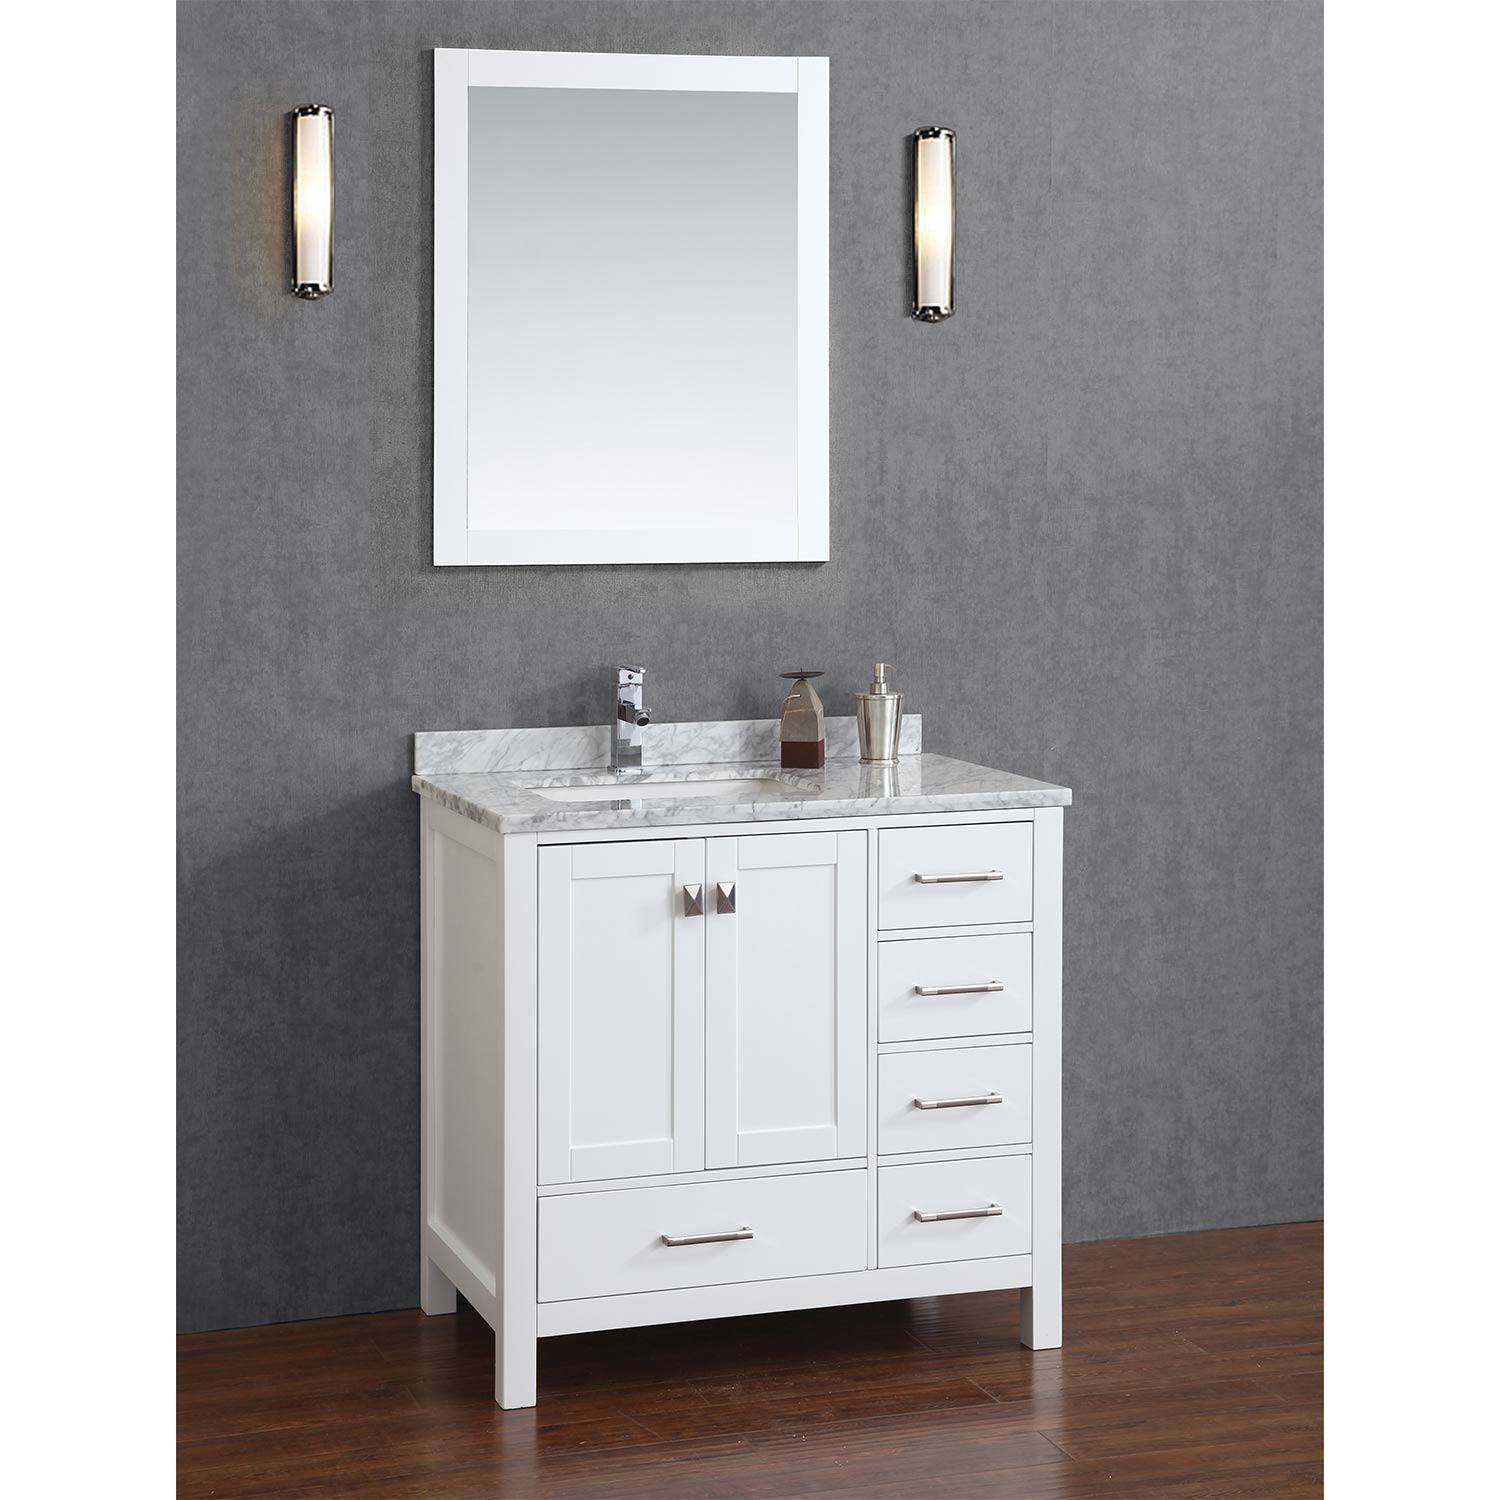 finish countertop marble vanities inch bathroom vanity contemporary accanto pin white